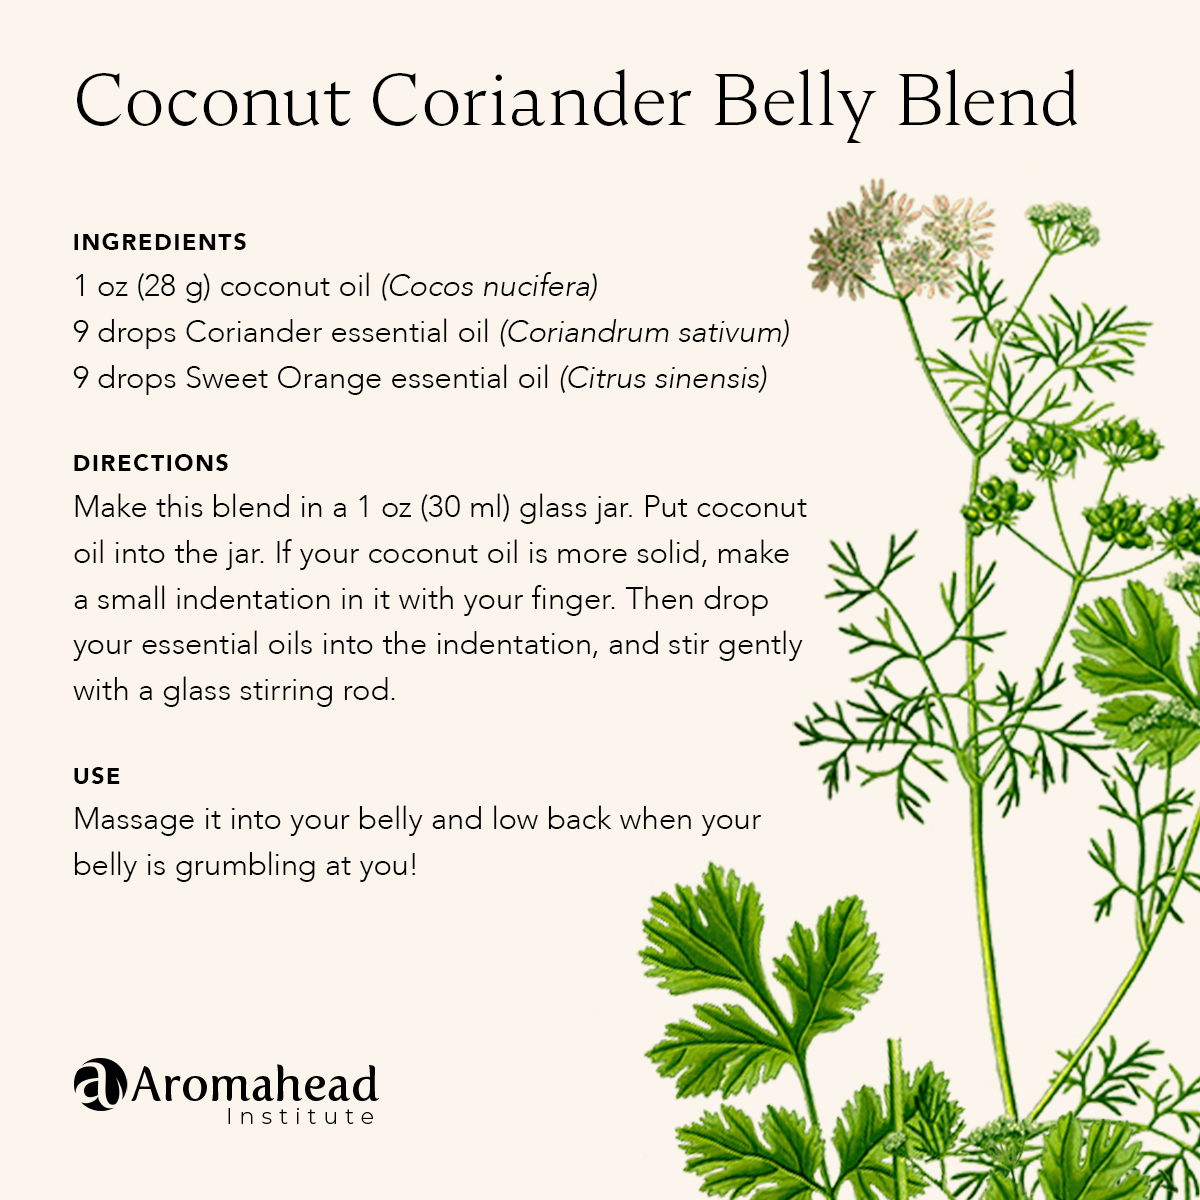 Coconut Coriander Belly Blend